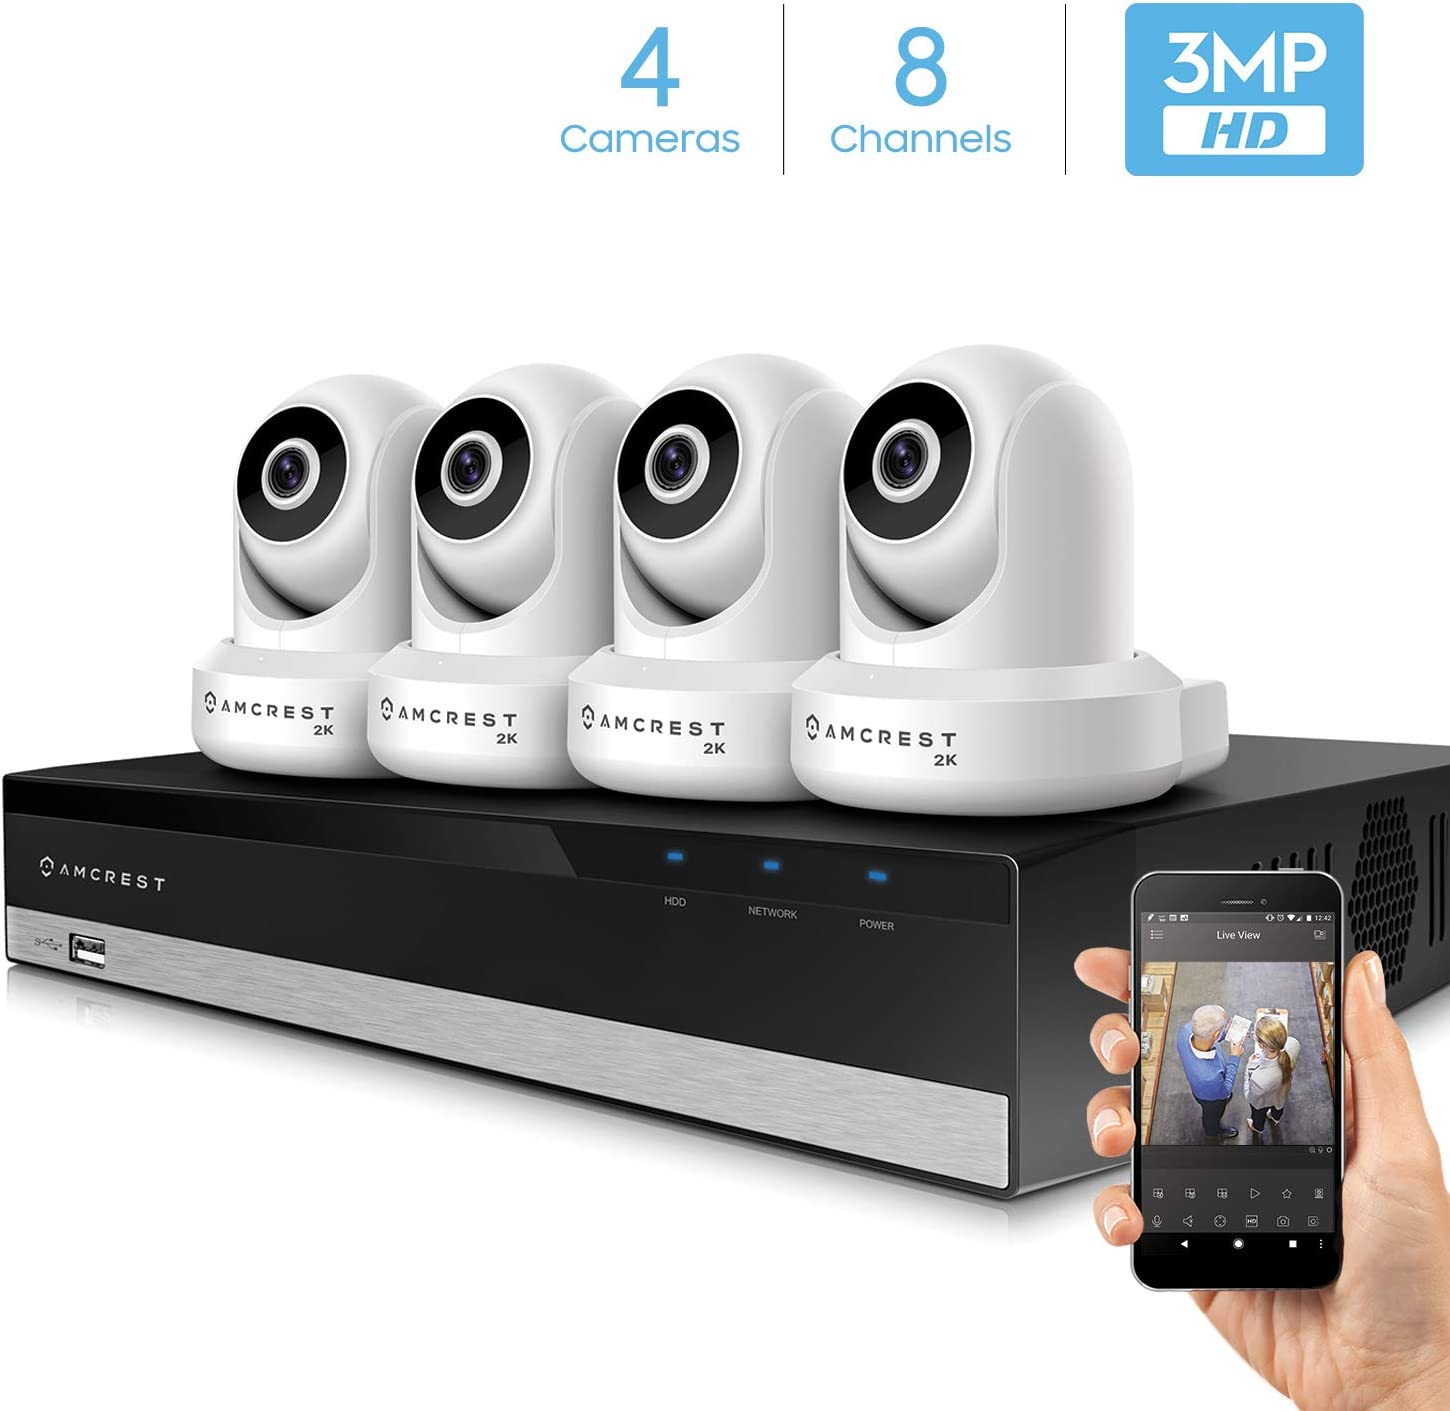 Amcrest 3MP Security Camera System w 4K 8CH NVR, 4 x 3-Megapixel Dome WiFi IP Cameras, Pan Tilt Surveillance, Dualband 5ghz 2.4ghz, Two-Way Audio, NV2108-IP3M-941W4 White